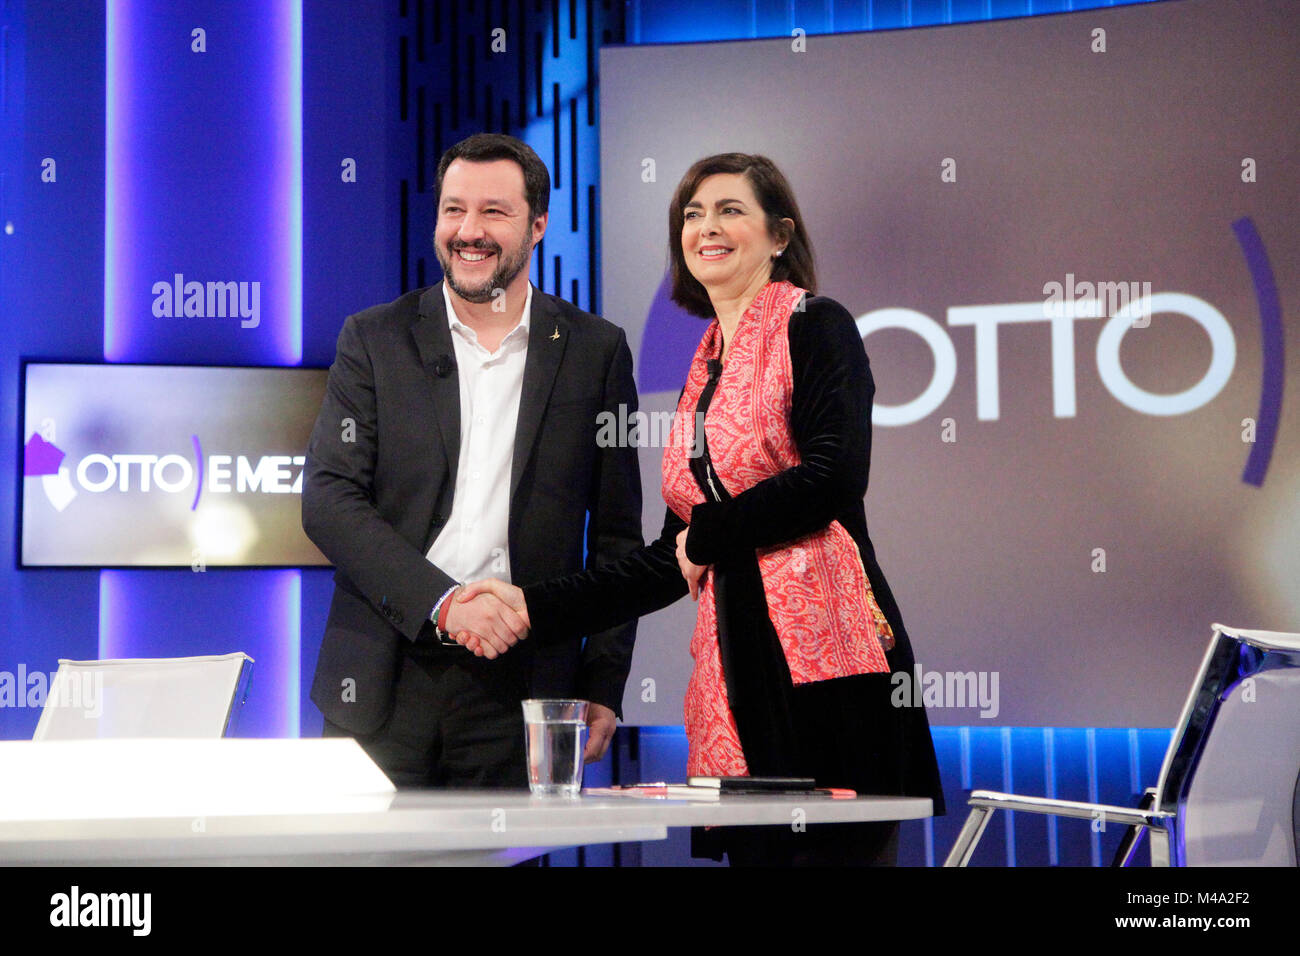 Matteo Salvini, leader of Northern League party, left, shakes hands with Laura Boldrini, president of the Chamber - Stock Image